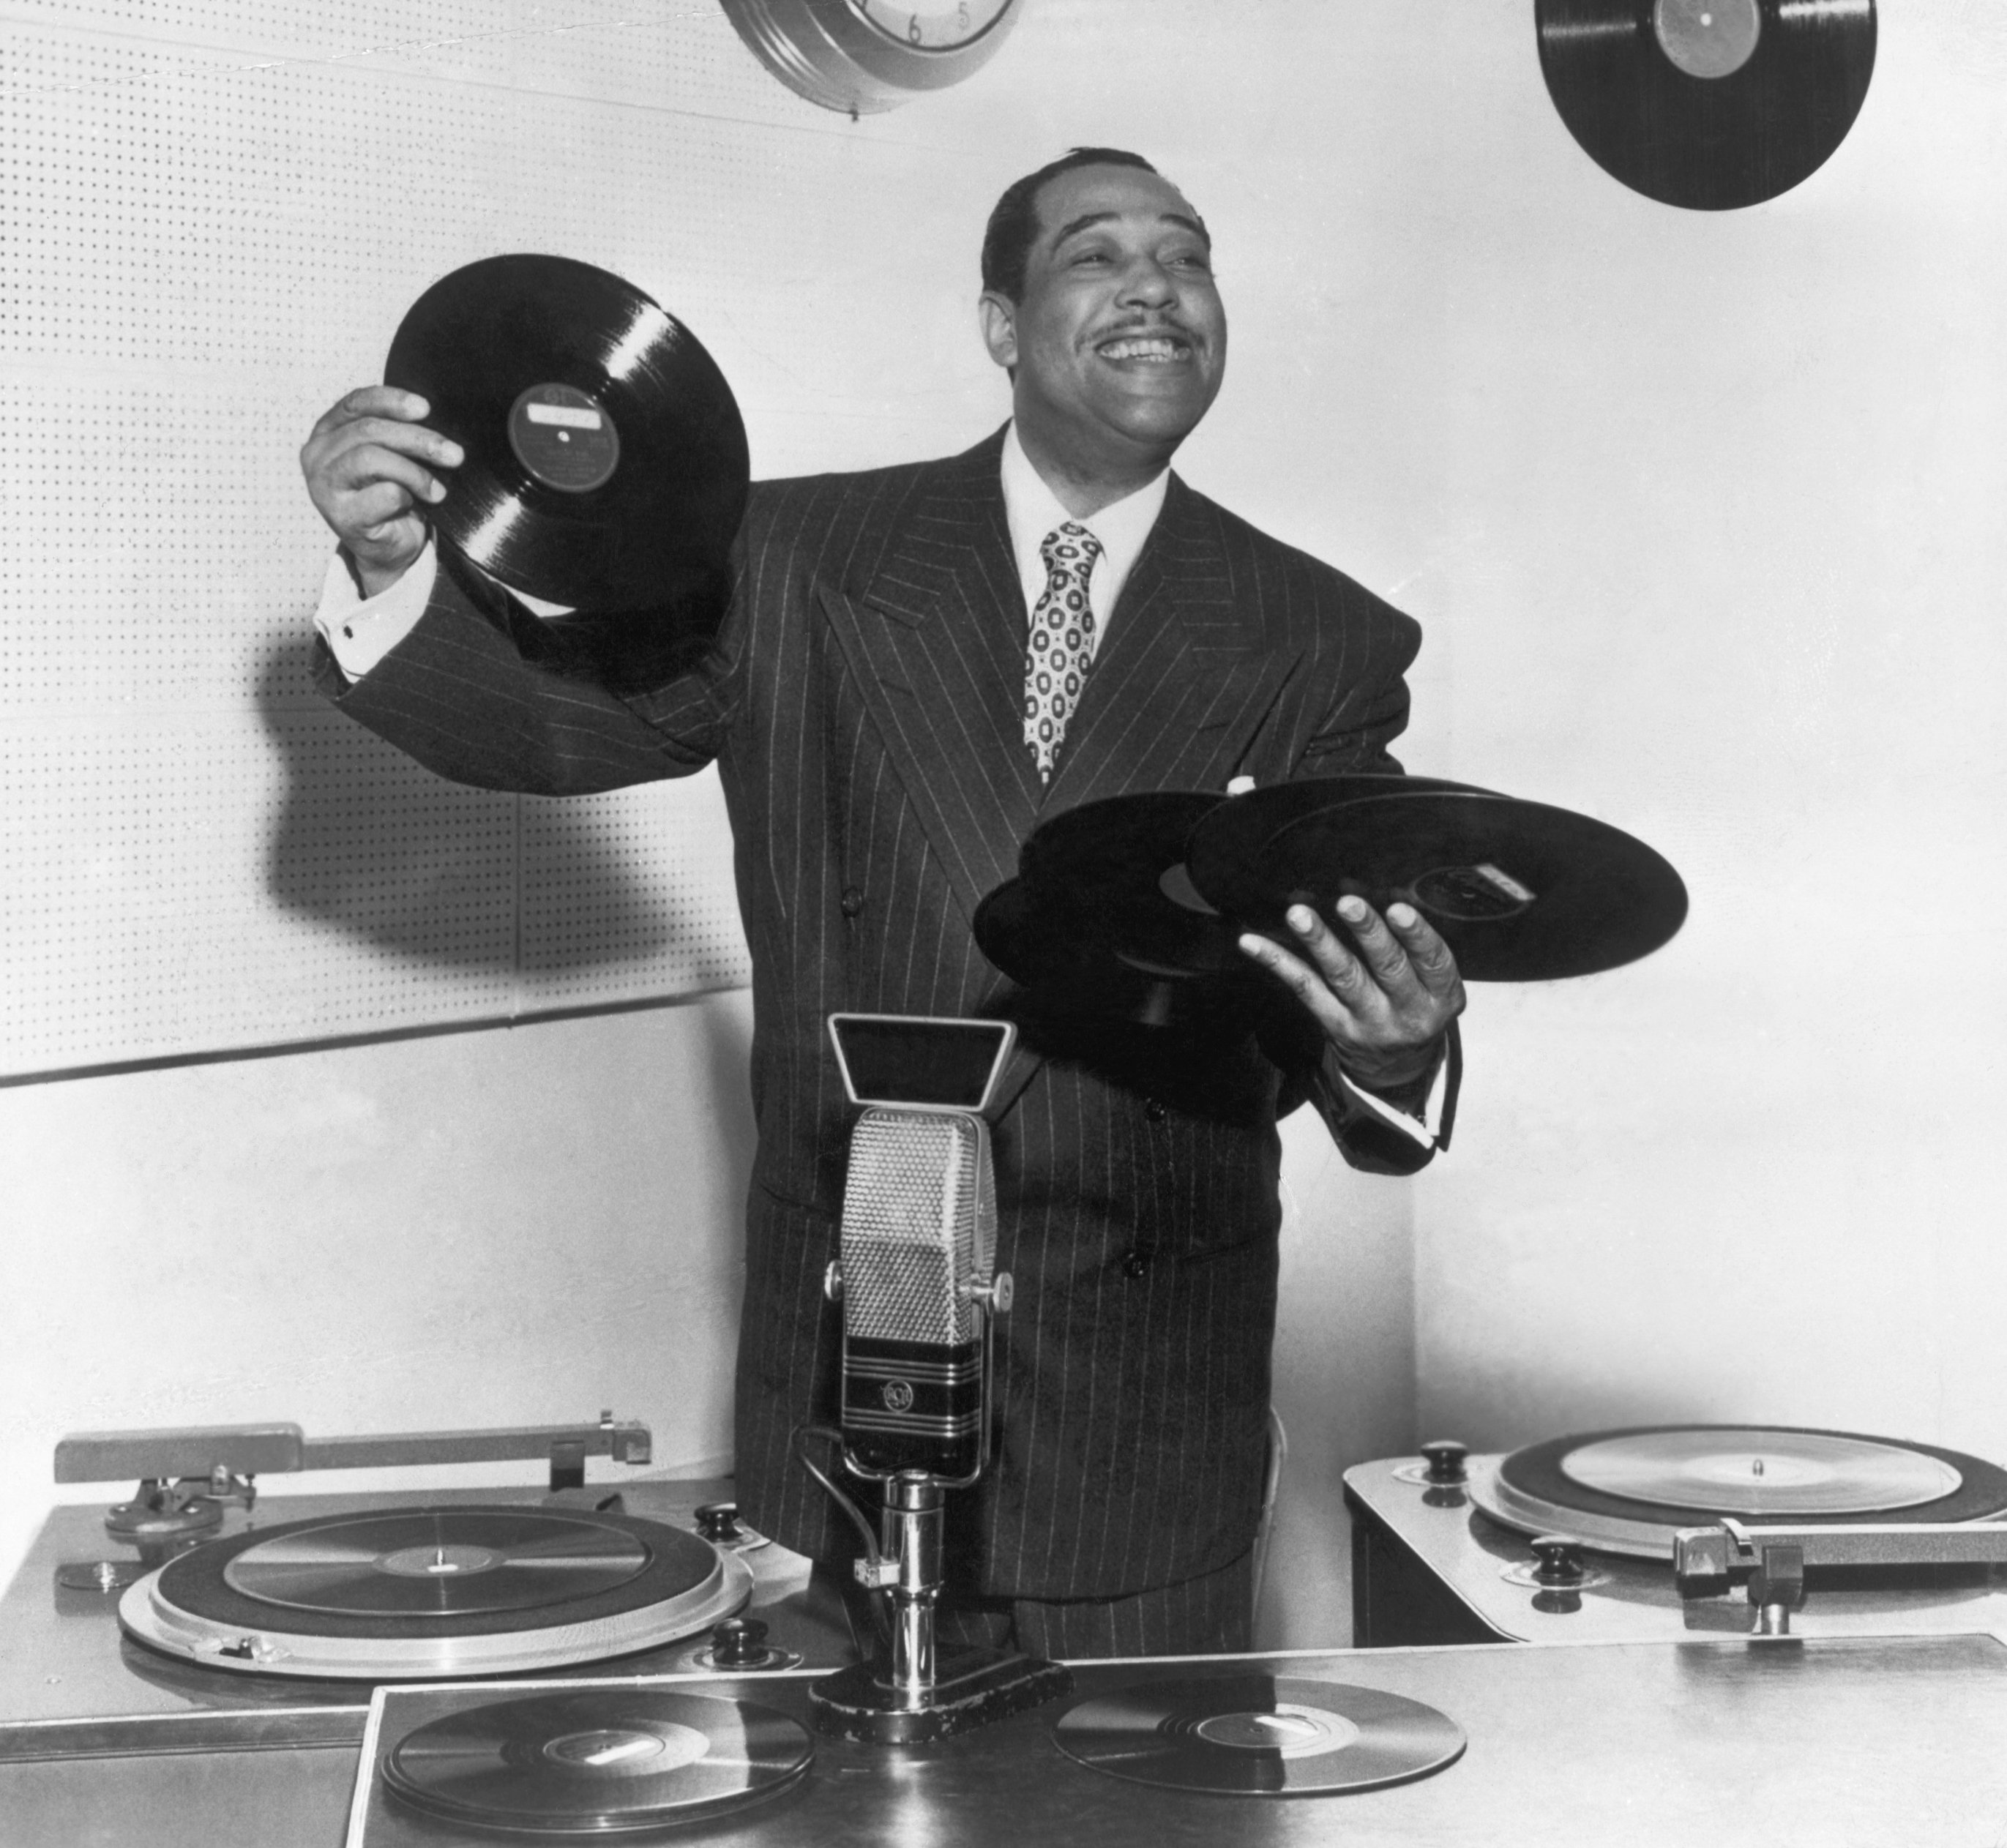 Duke Ellington (1889-1974), bandleader, composer and arranger, has his hands full as he tries role of disc jockey | Photo: Getty Images